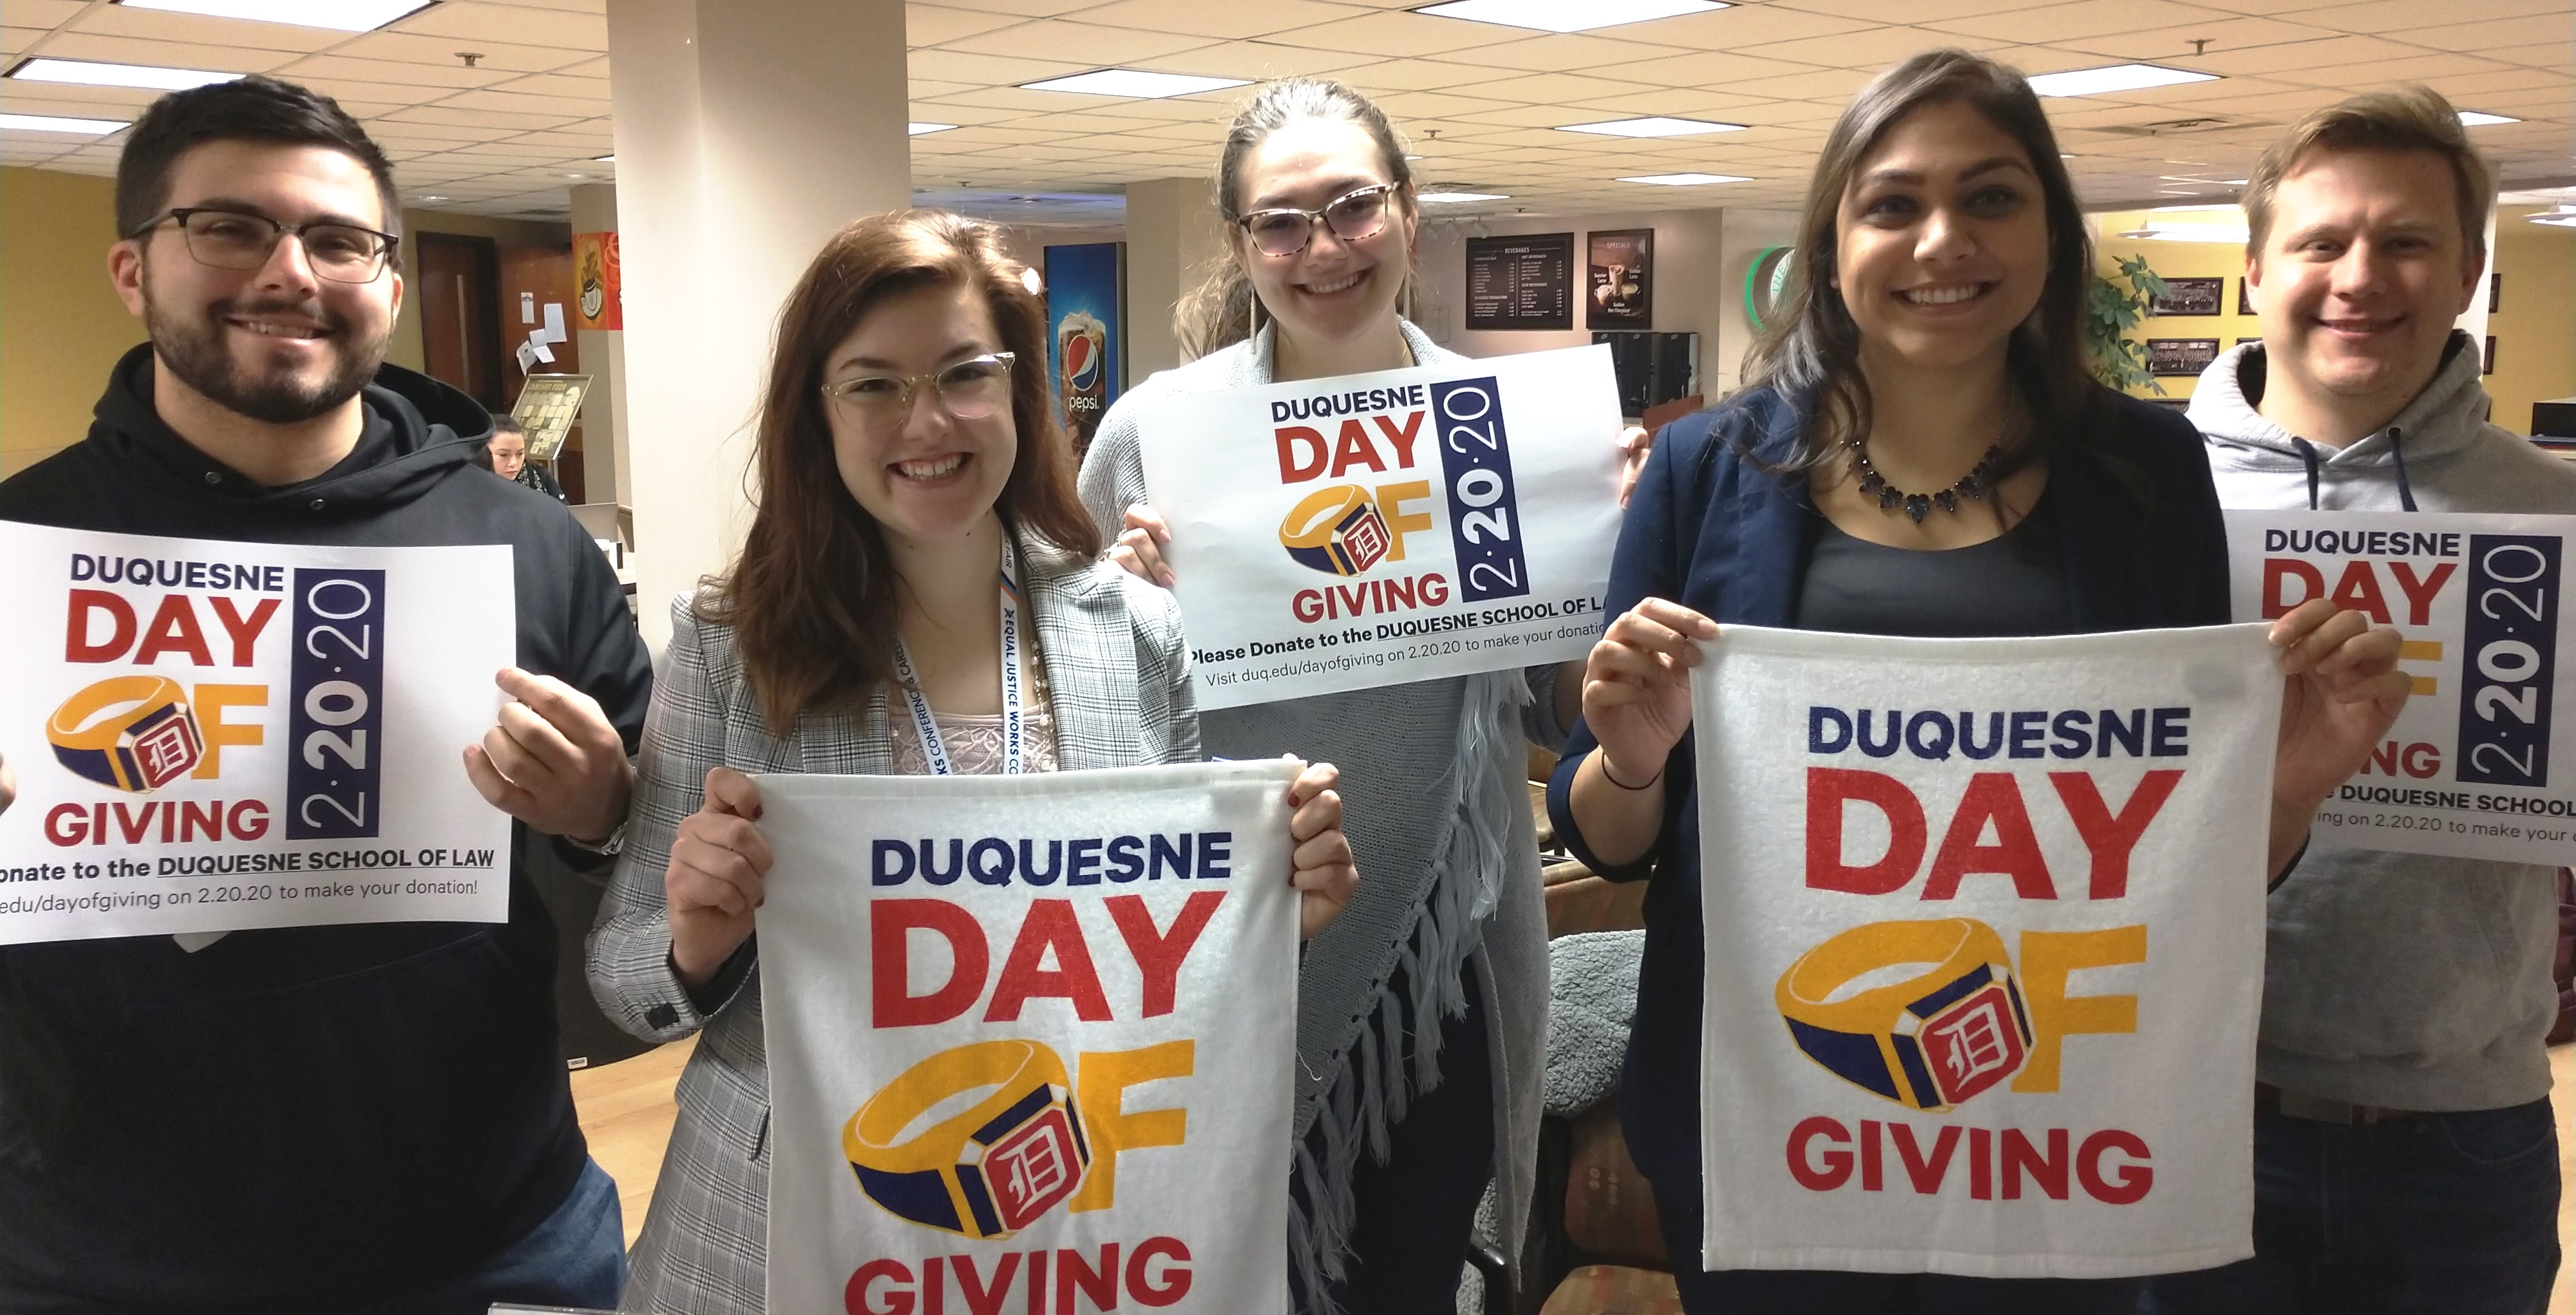 Duquesne Day of Giving students